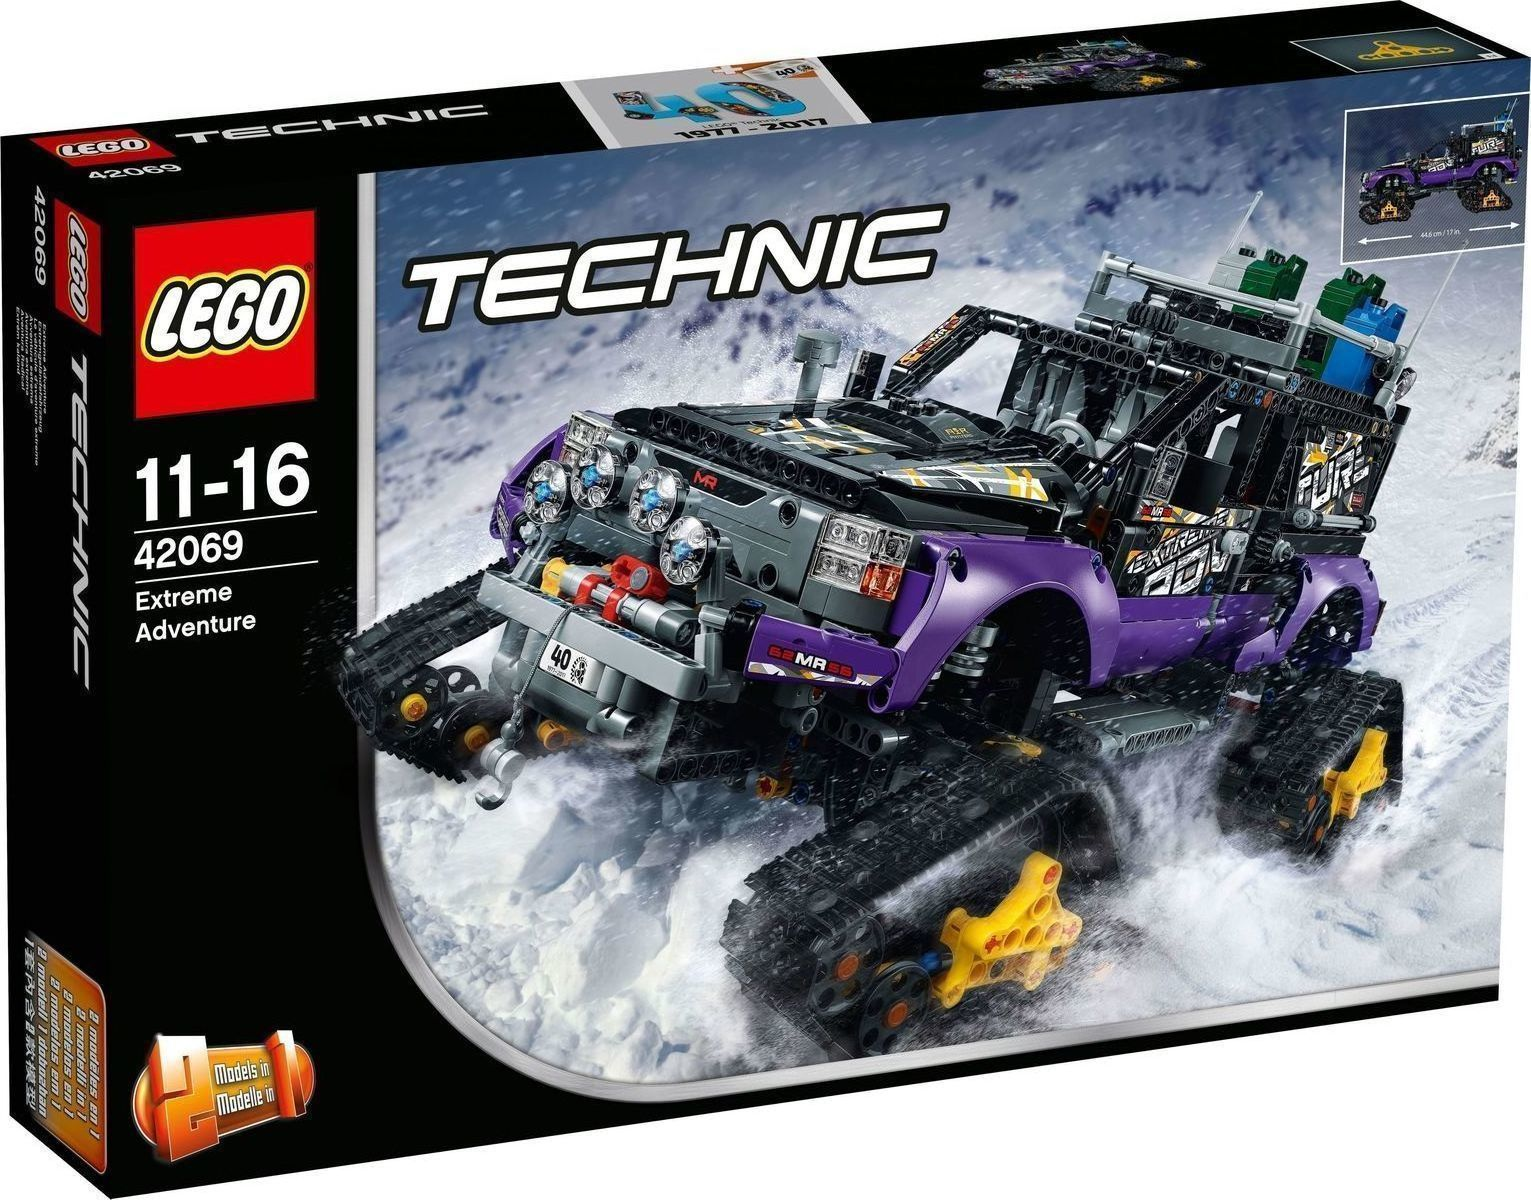 Lego Technic: Extreme Adventure 42069